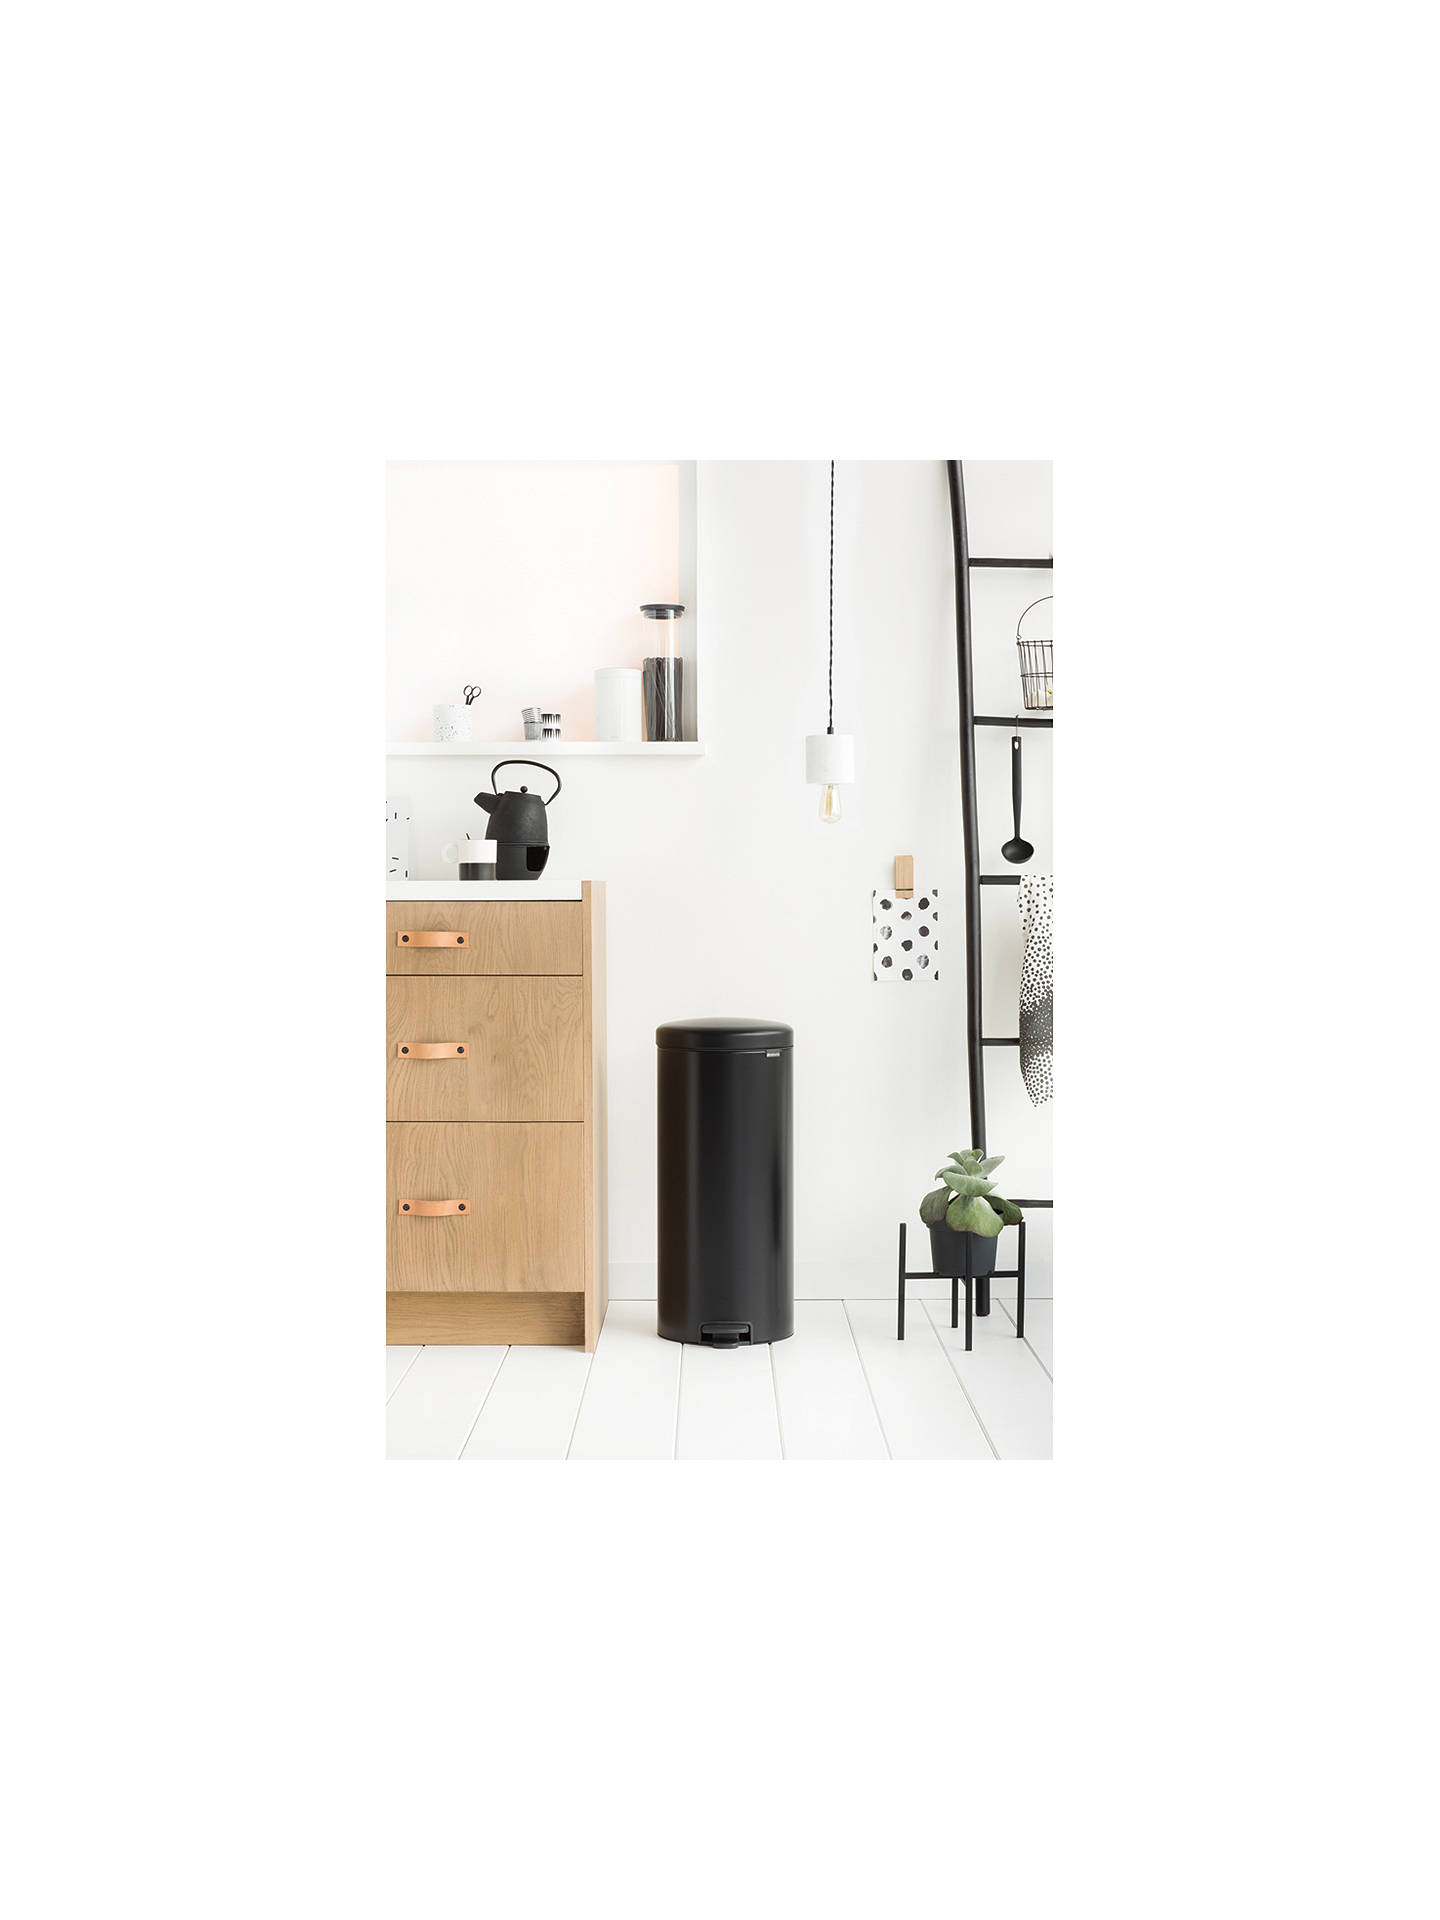 BuyBrabantia newIcon Pedal Bin, 30L, Matt Black Online at johnlewis.com